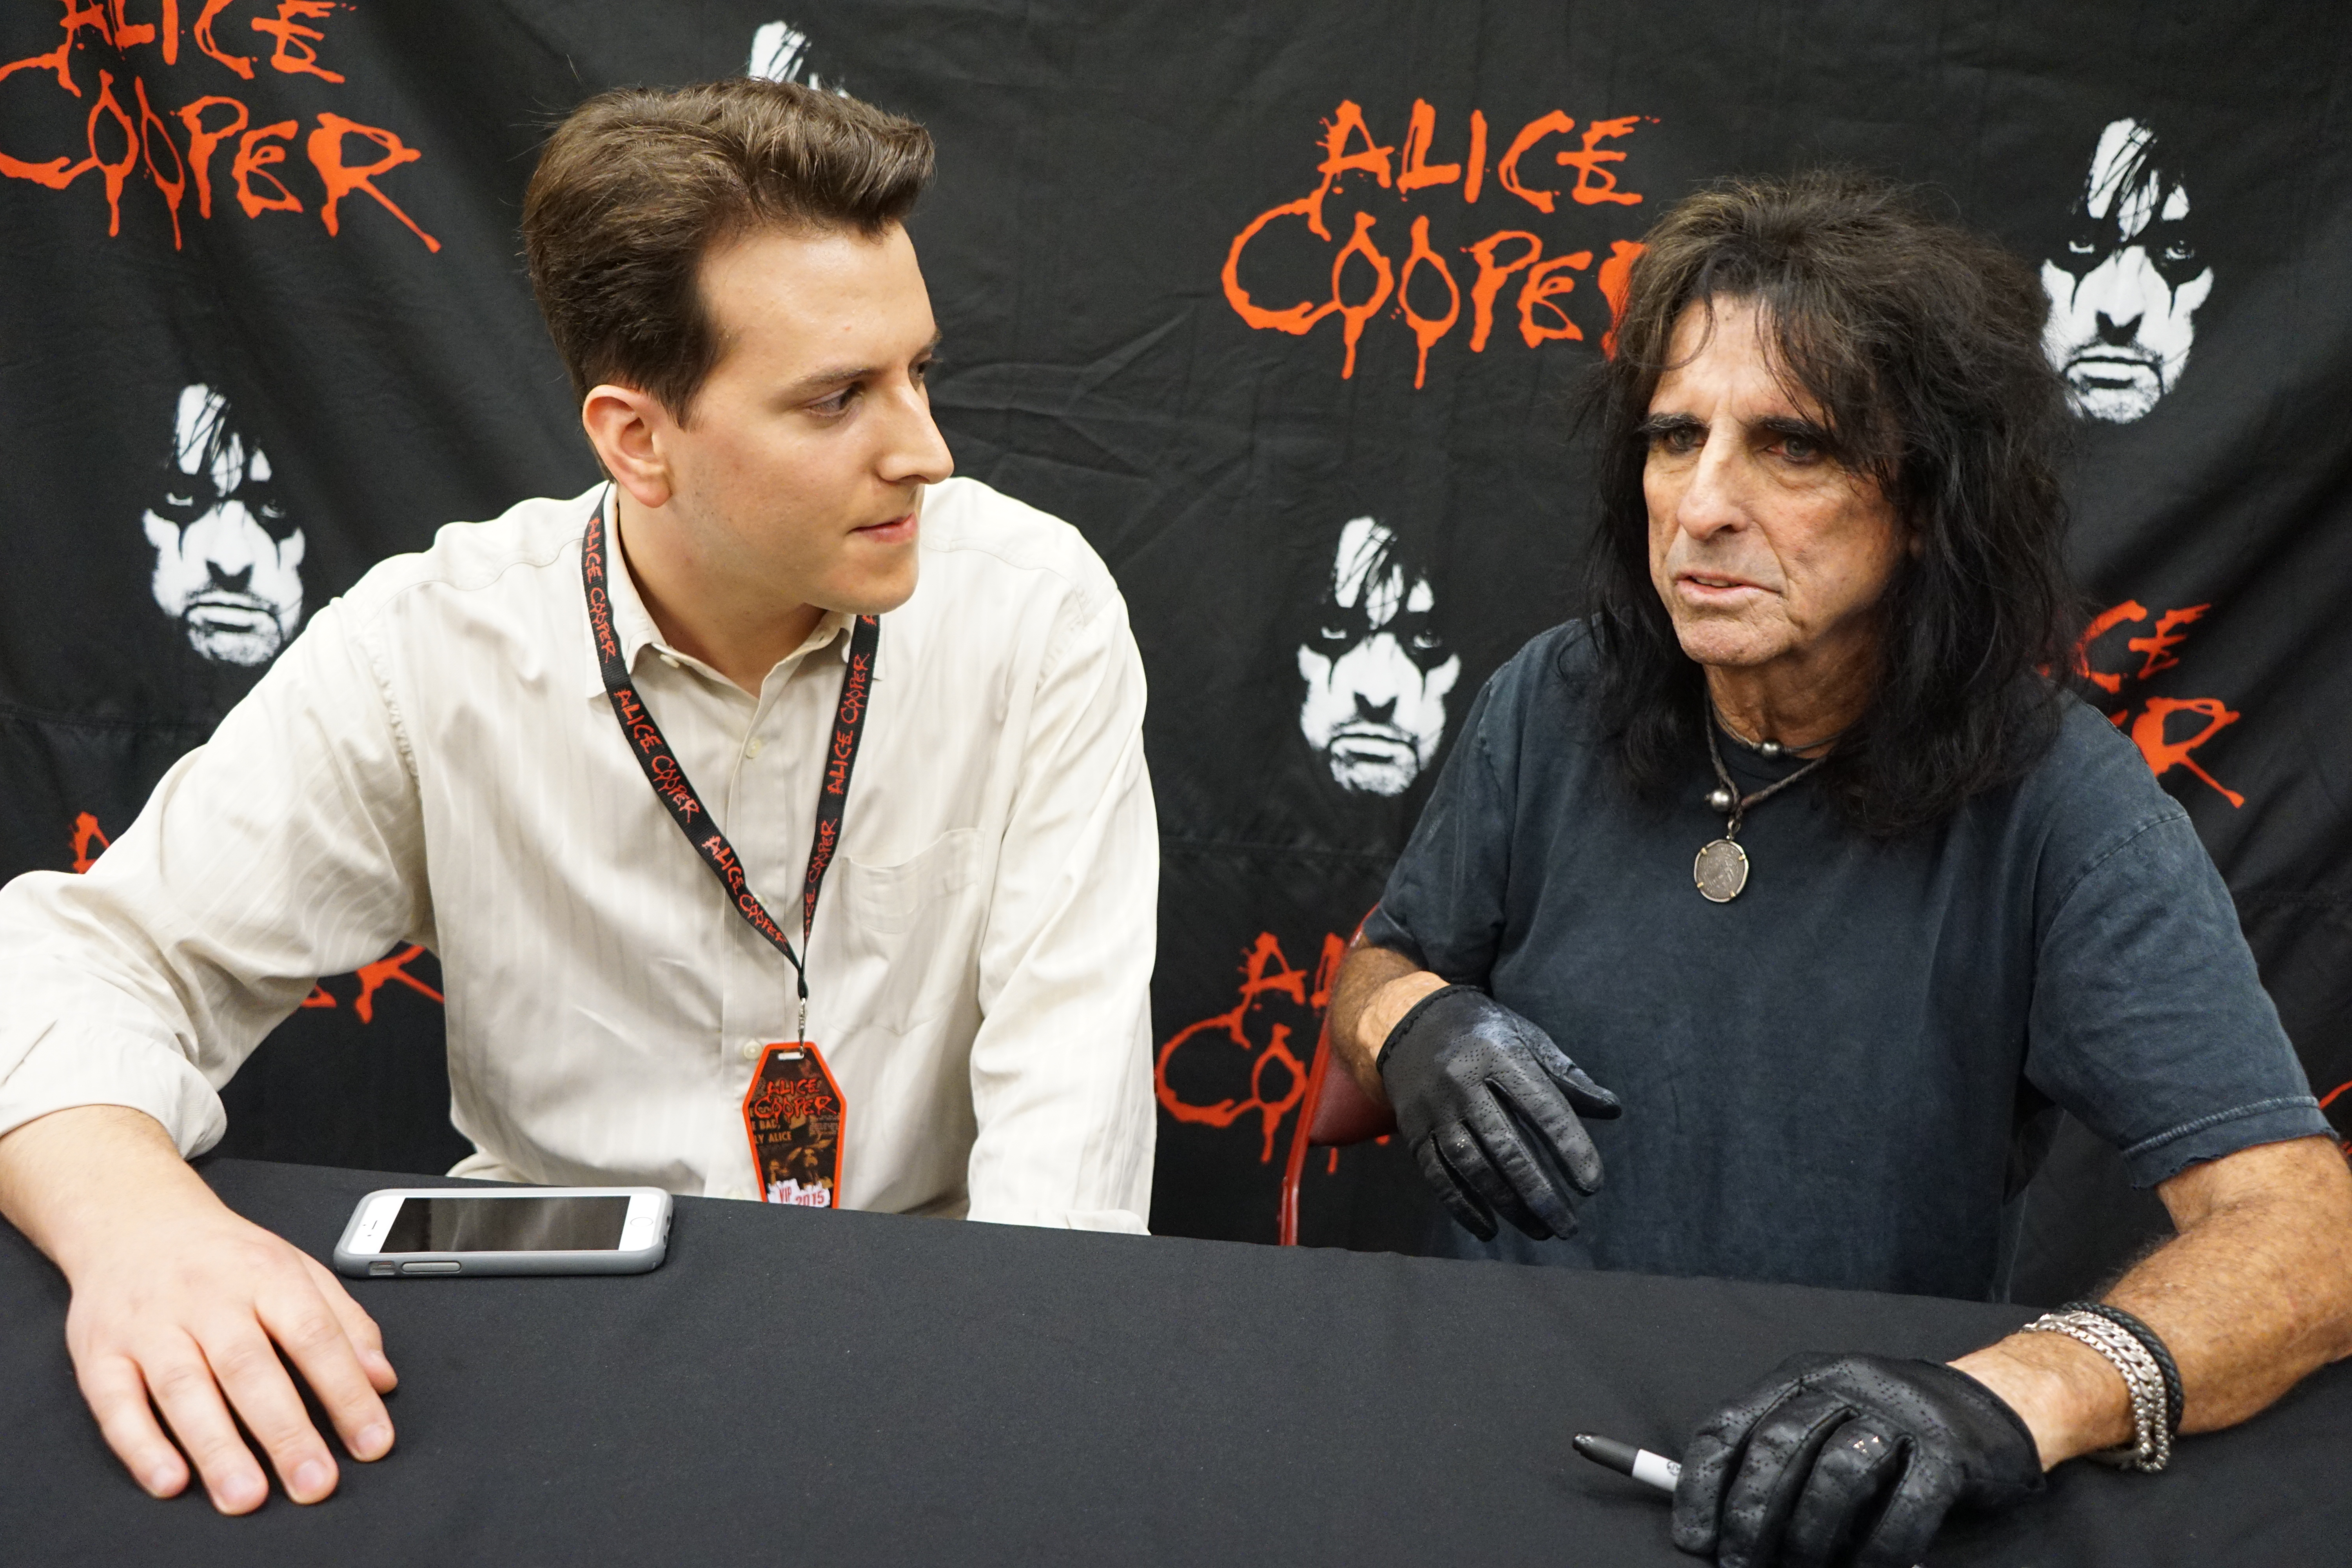 Interviewing Alice Cooper backstage after a show.